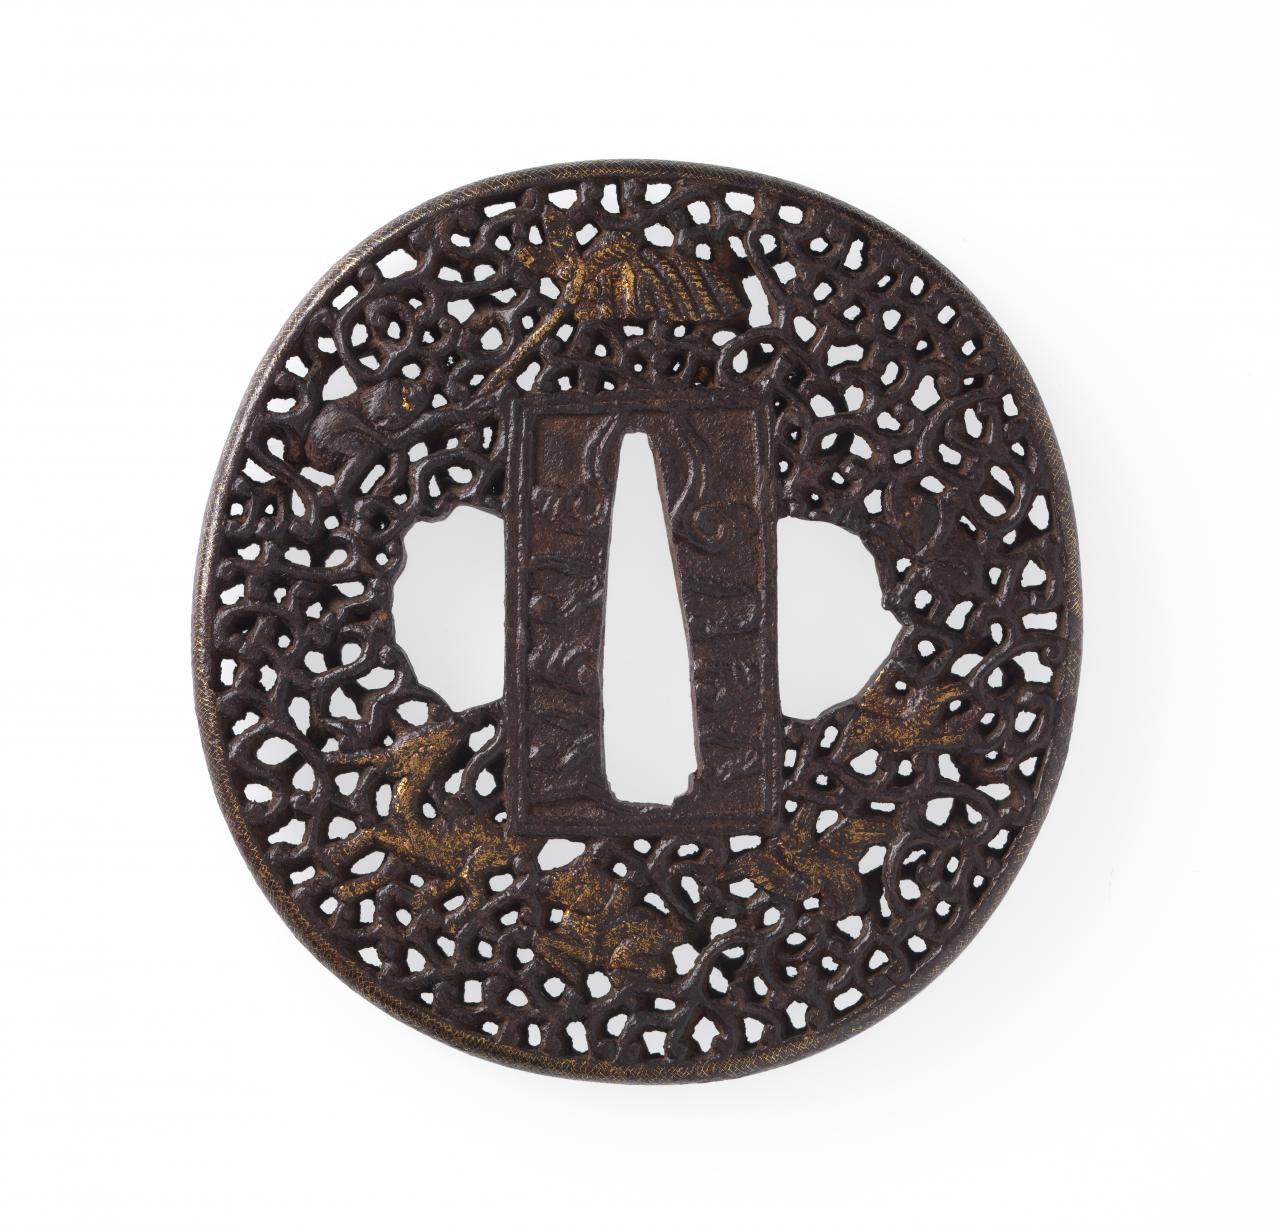 Sword guard with monkey, deer and bee's nest design